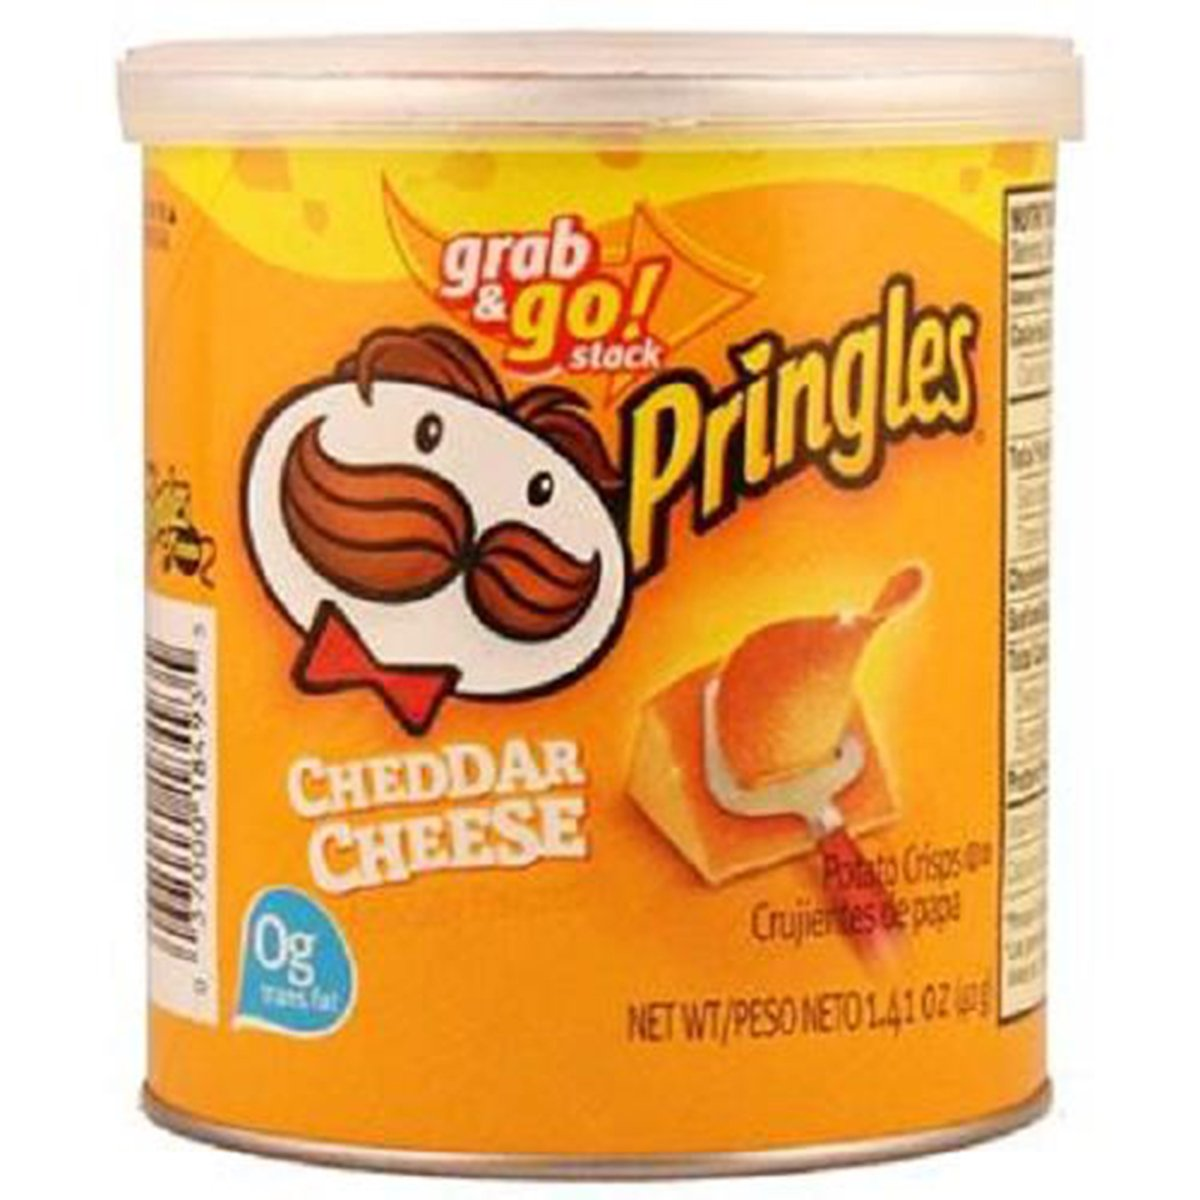 Product Of Pringles, Cheddar Cheese - Small, Count 1 - Chips / Grab Varieties & Flavors